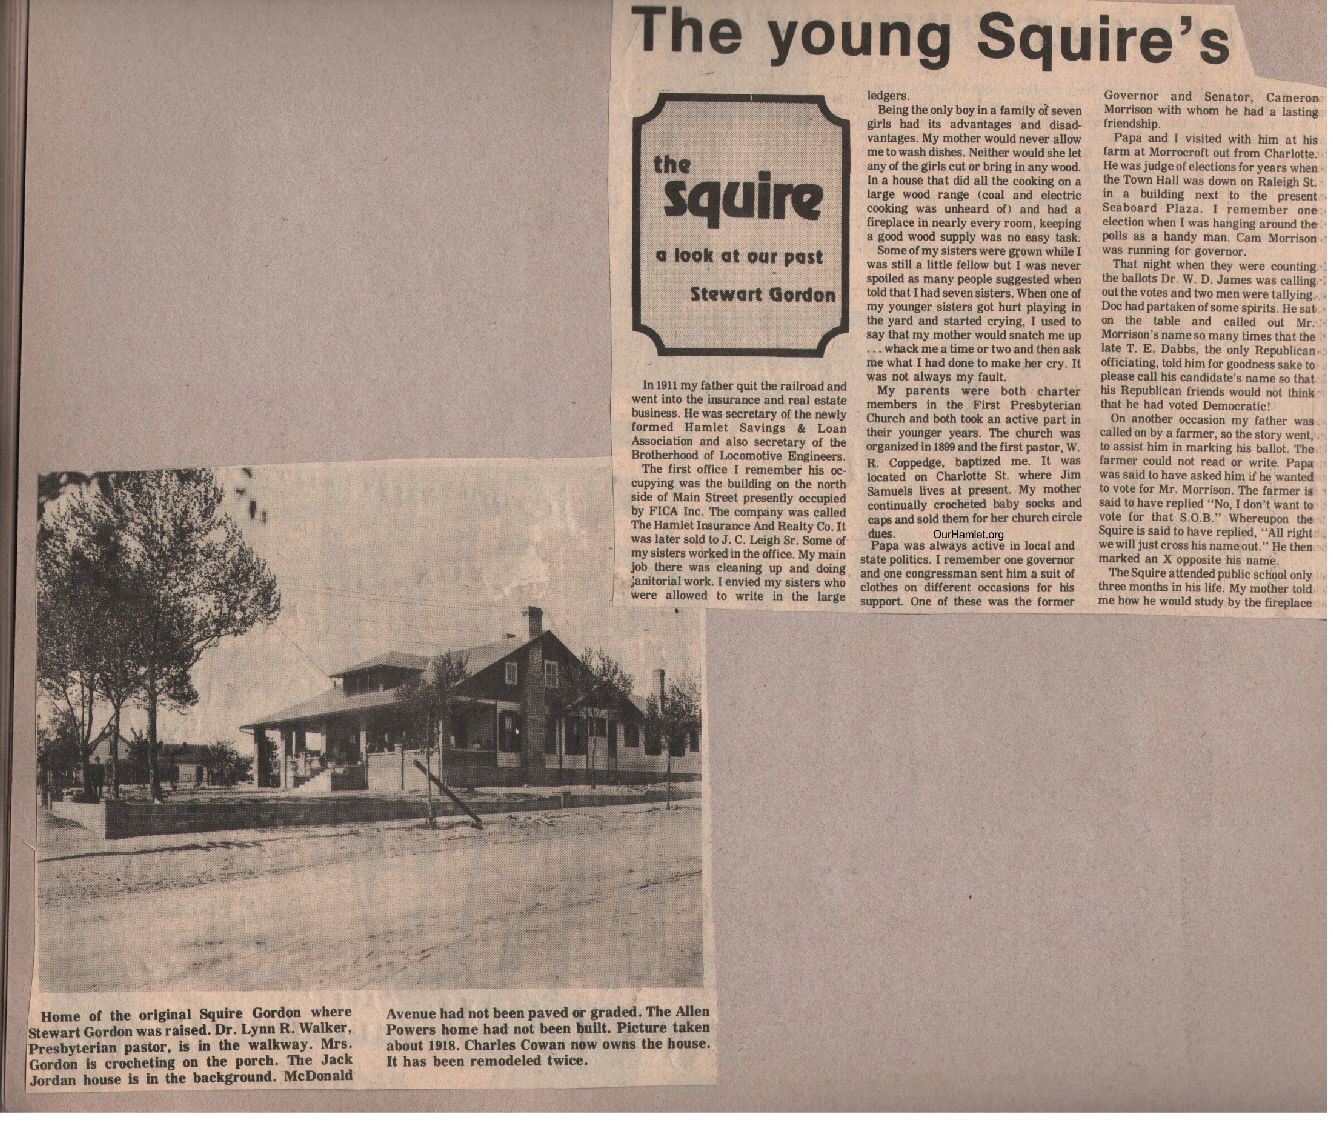 The Squire - The young Squire's relationship with his father a OH